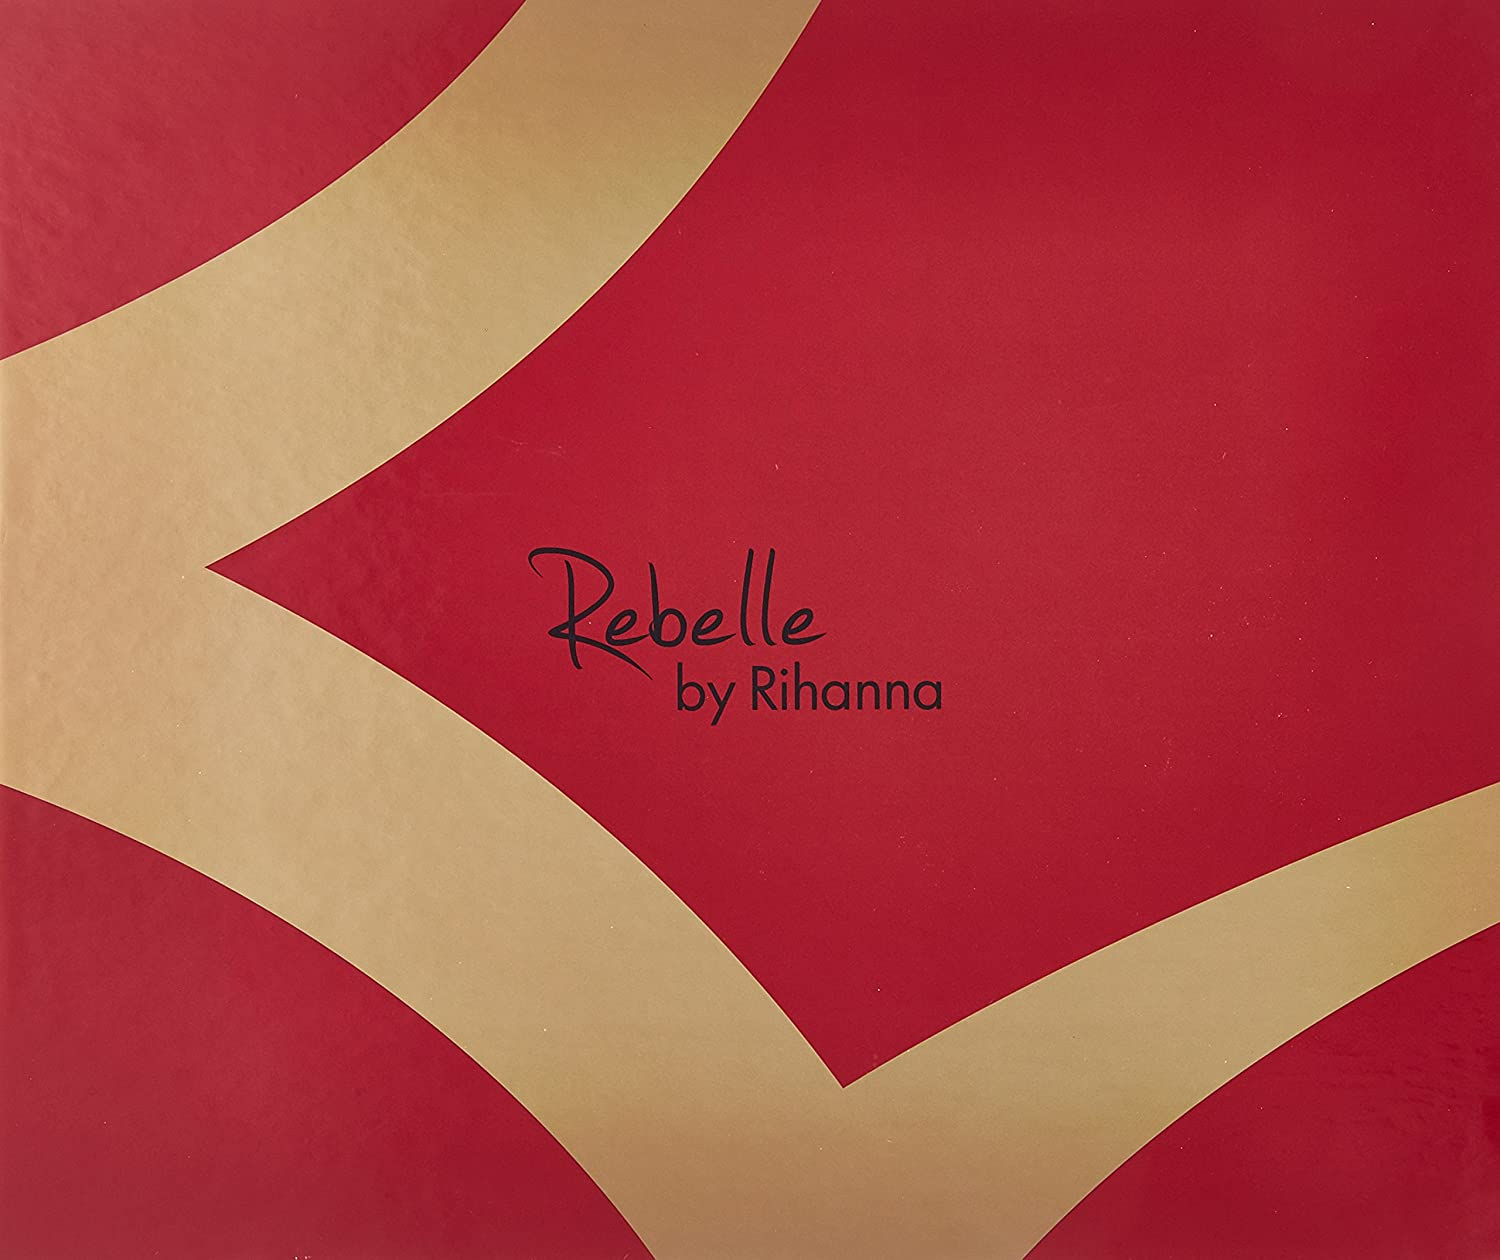 Rihanna Rebelle 4 Piece Gift Set for Women